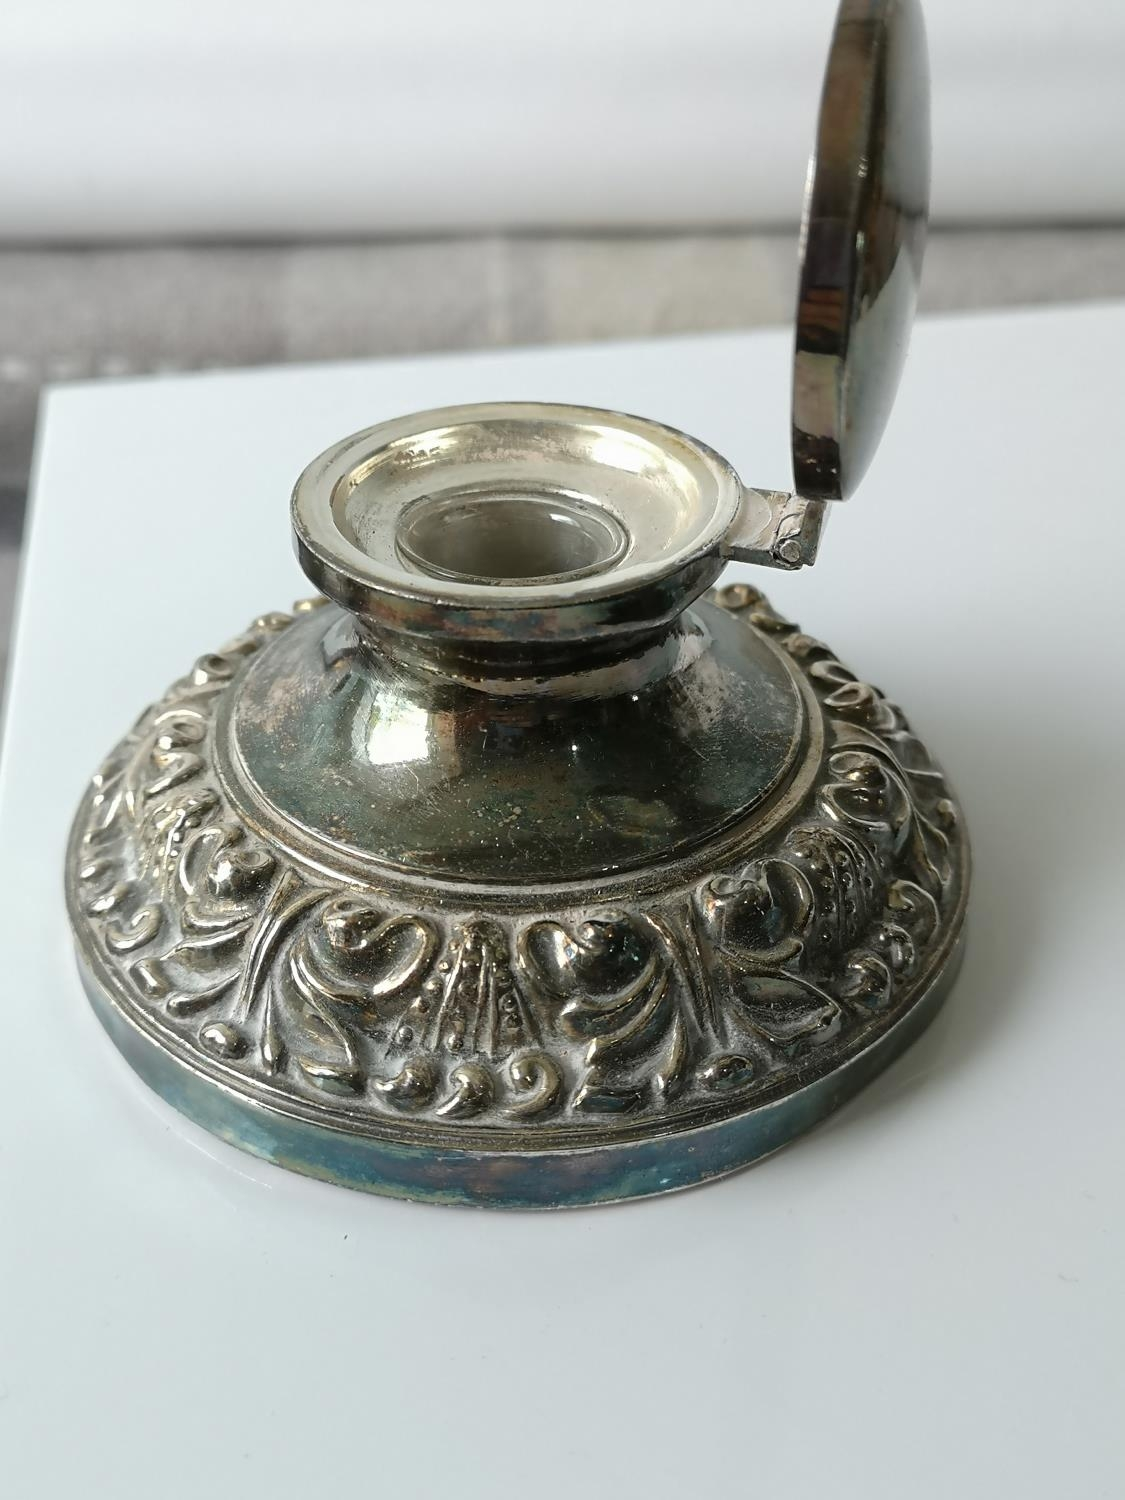 An antique ornate white metal/ plated ink well pot with glass insert. [5.5x9.5x9.5cm] - Image 3 of 3